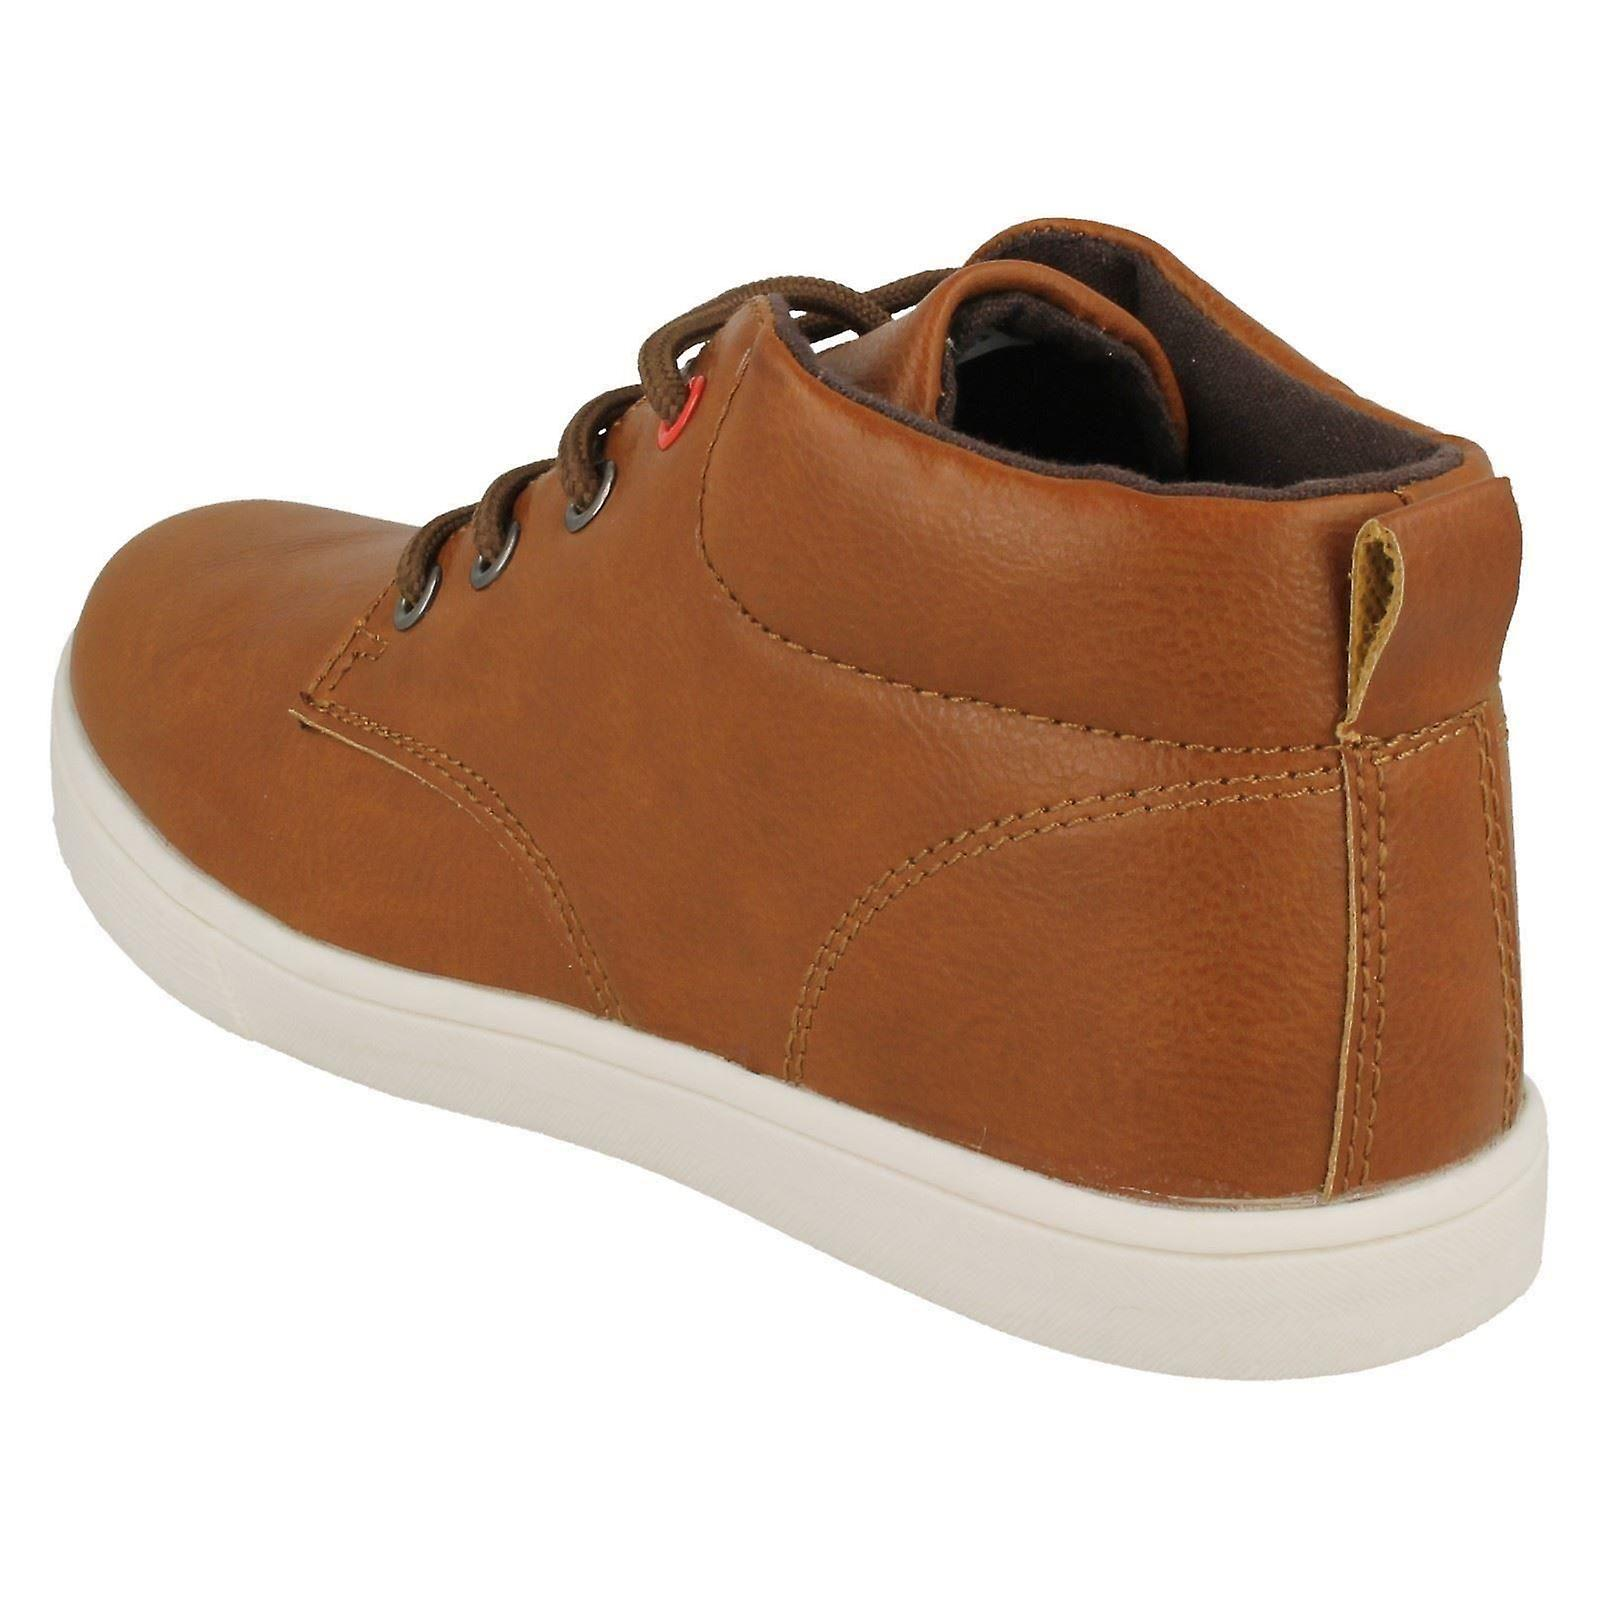 Boys Tan Lace Up Ankle Boots UK Sizes 9-3 N2036